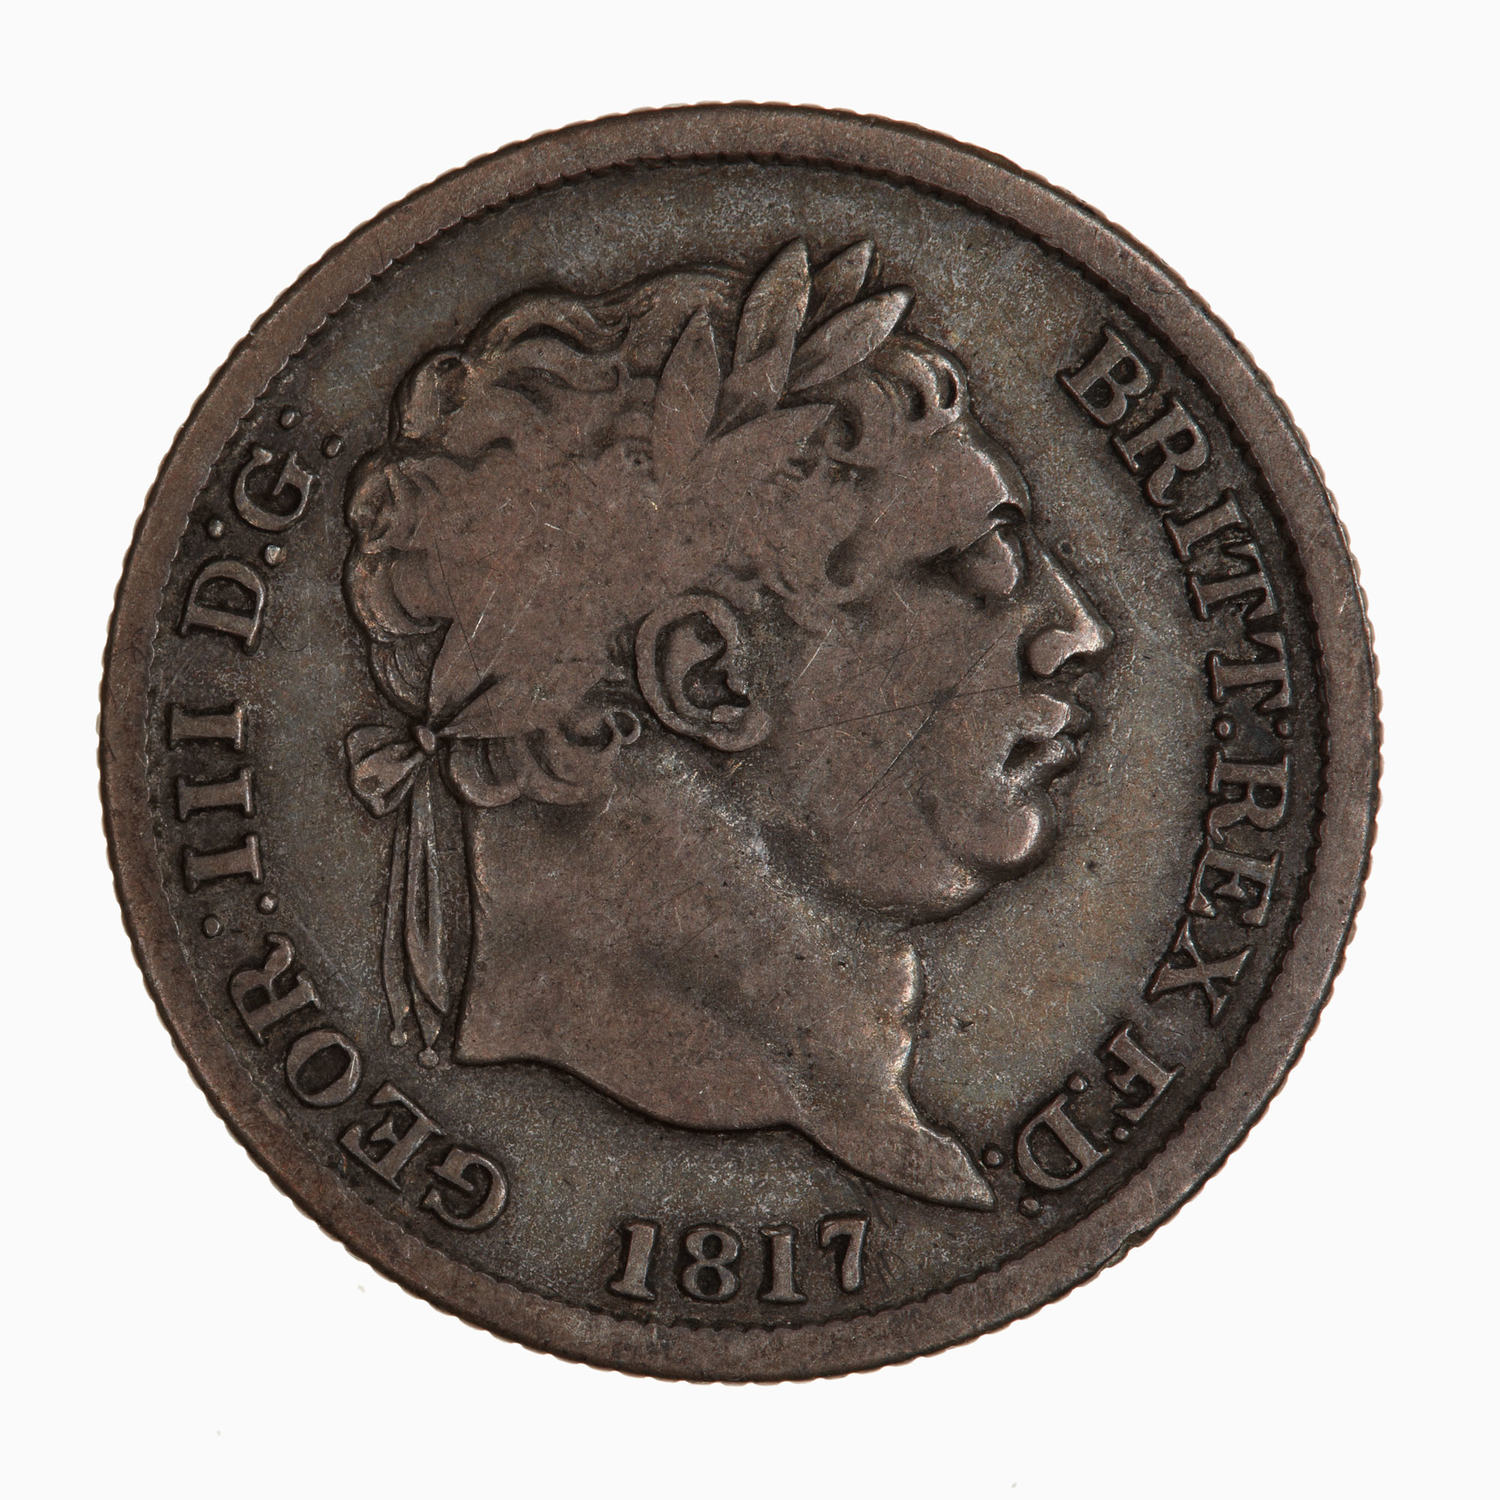 Shilling 1817: Photo Coin - Shilling, George III, Great Britain, 1817